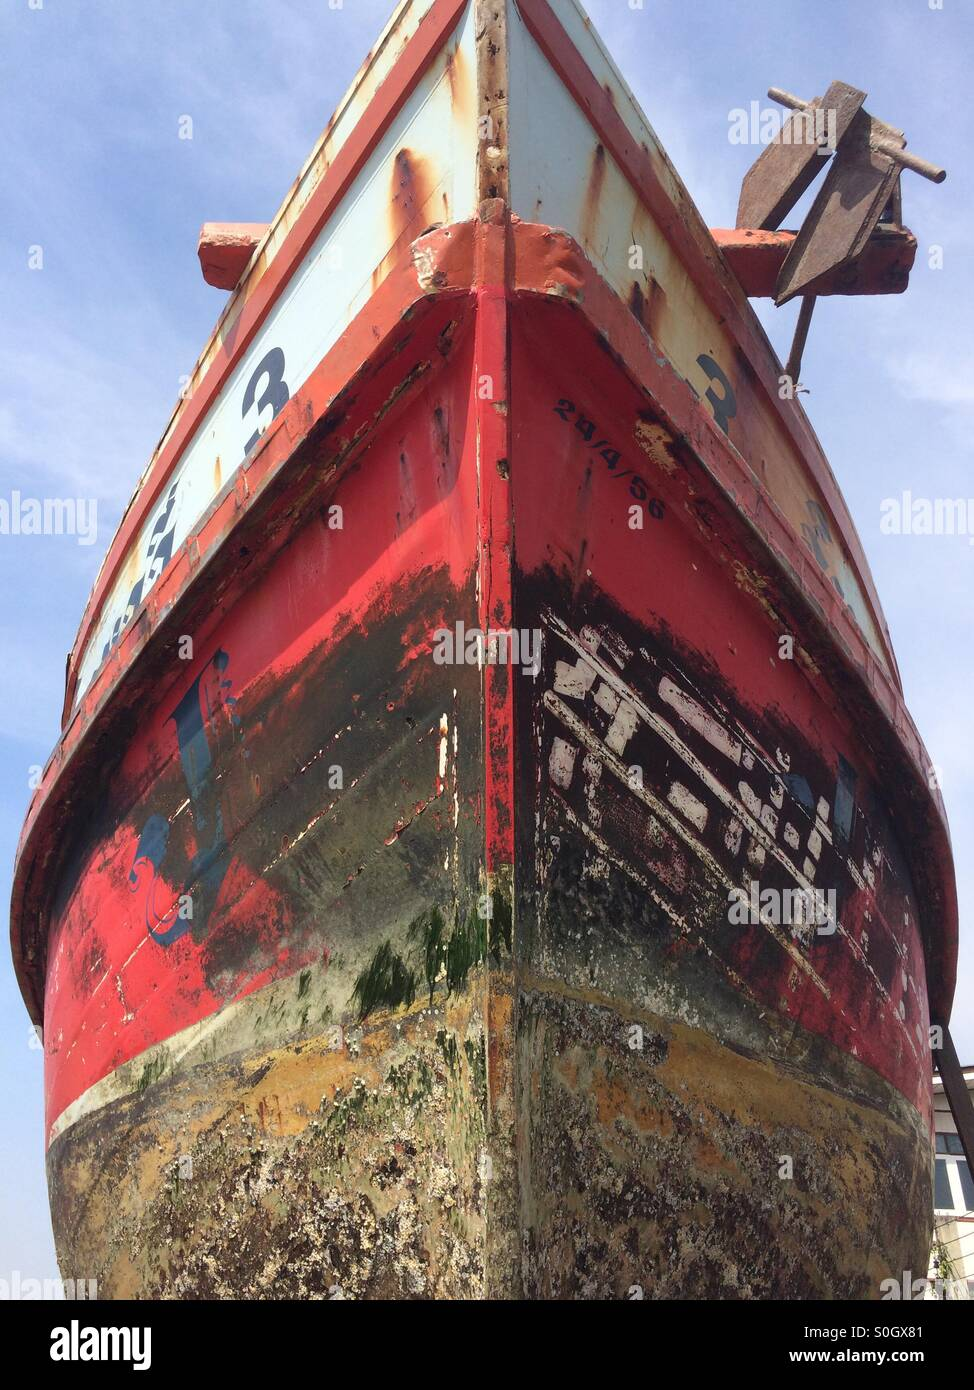 Low angled view of the bow of a fishing boat in a dry dock, Mahachai, Thailand. - Stock Image